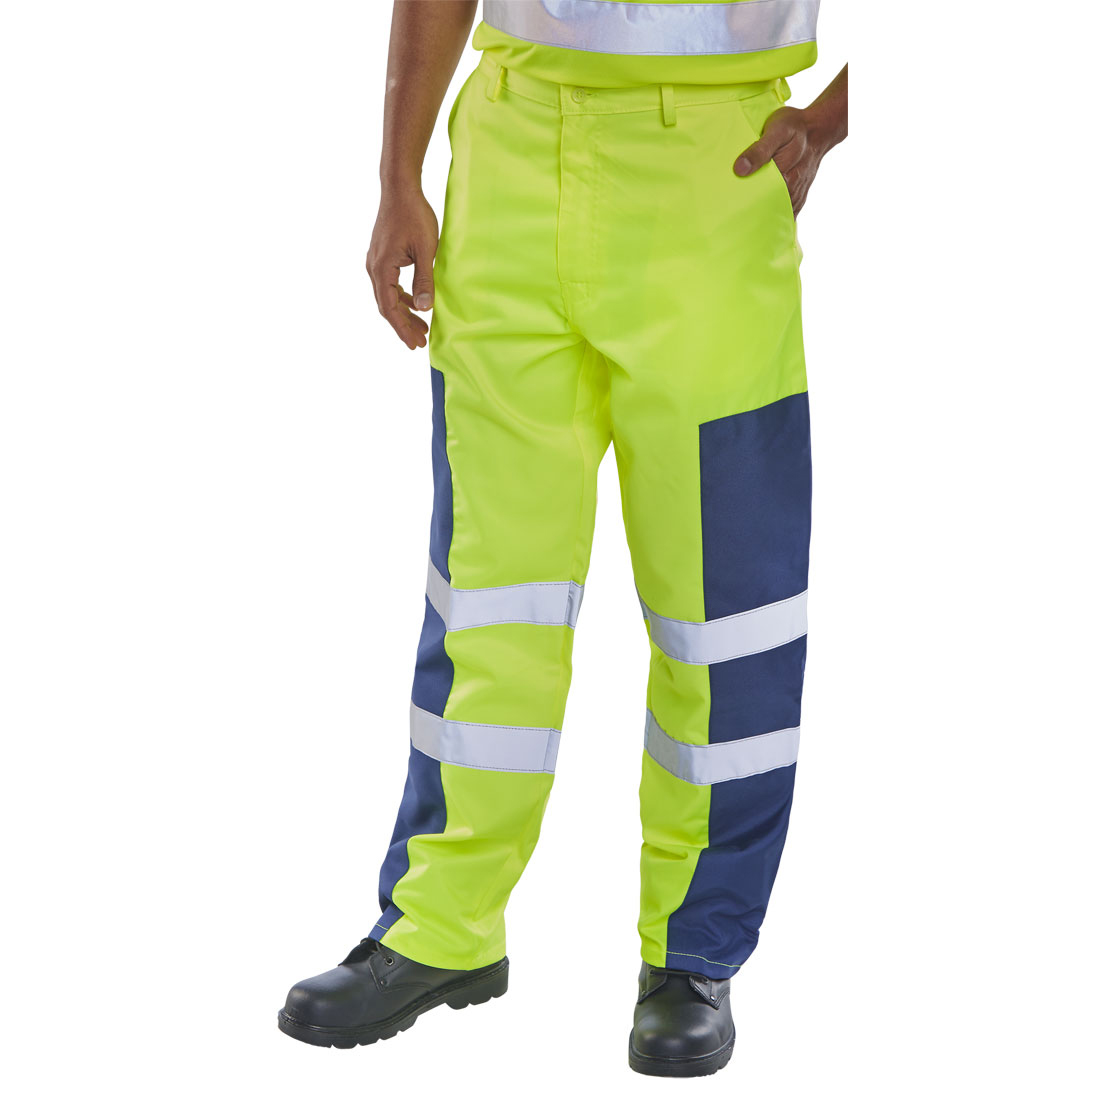 High Visibility Click Workwear Trousers Hi-Vis Nylon Patch Yellow/Navy 38 Long Ref PCTSYNNP38T *Up to 3 Day Leadtime*